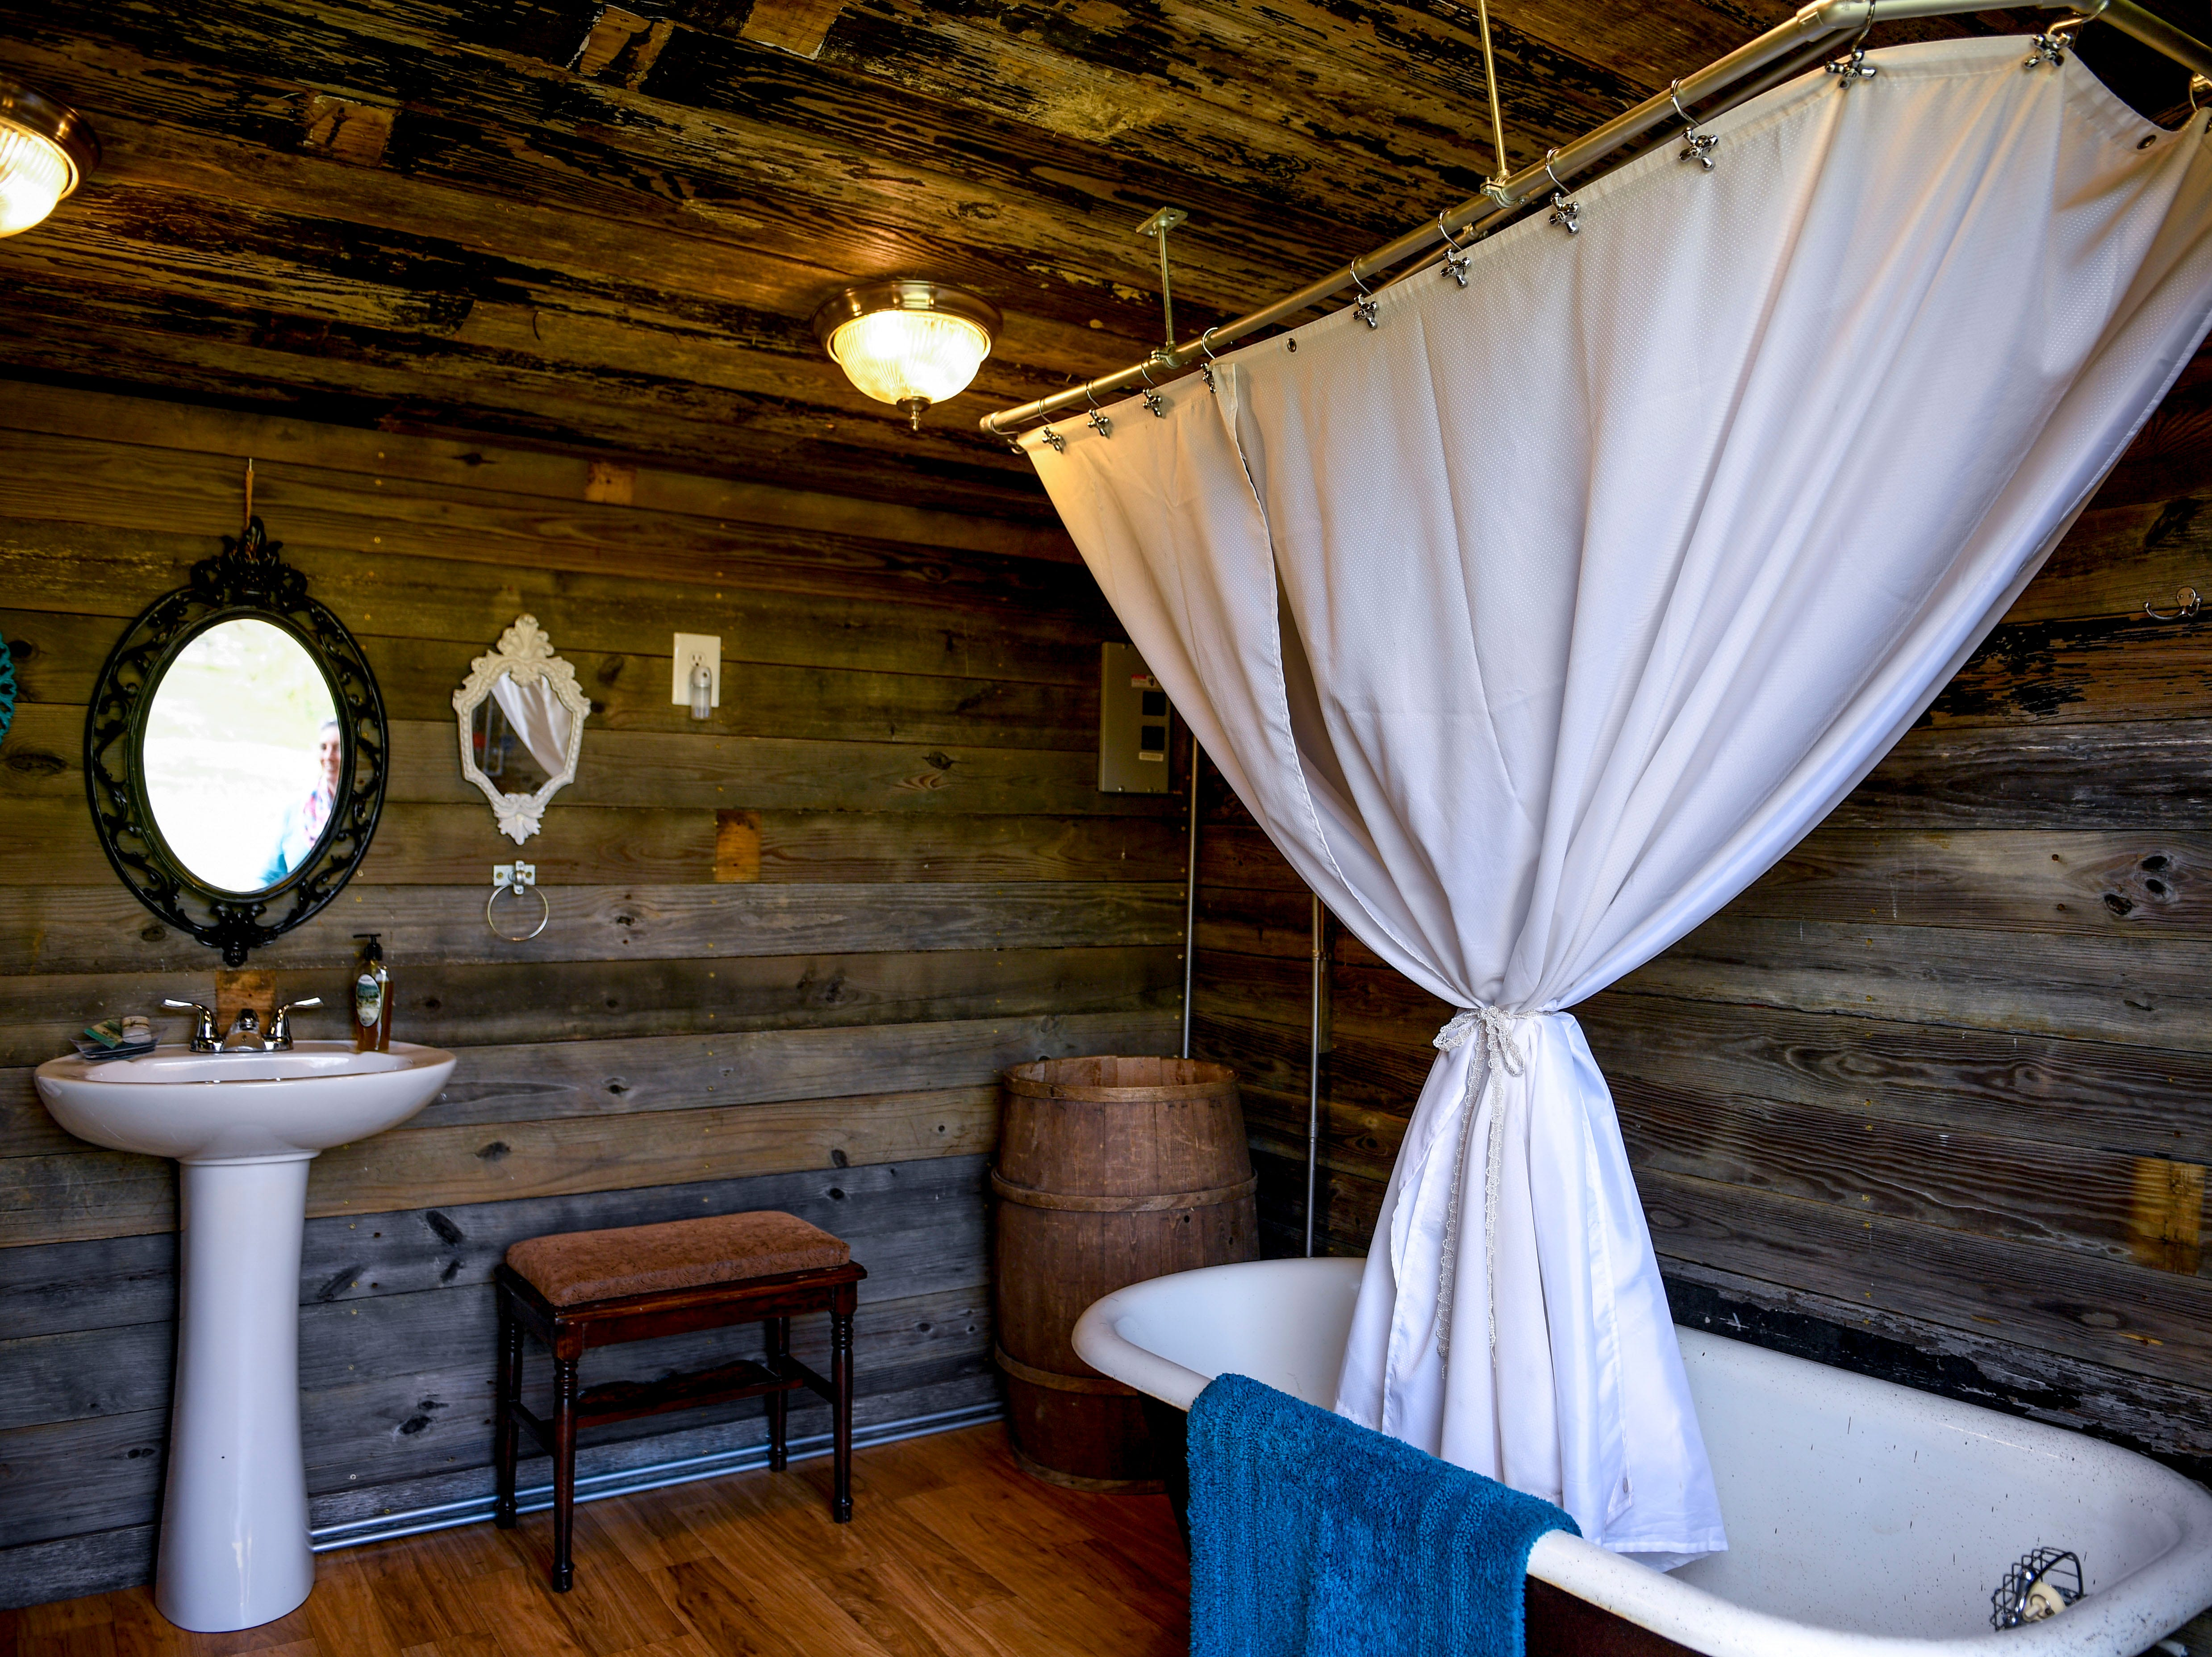 The interior of a bathroom created out of an old storage shed can be seen at Stillwaters Farm in Henderson, Tenn., on Monday, Nov. 5, 2018.